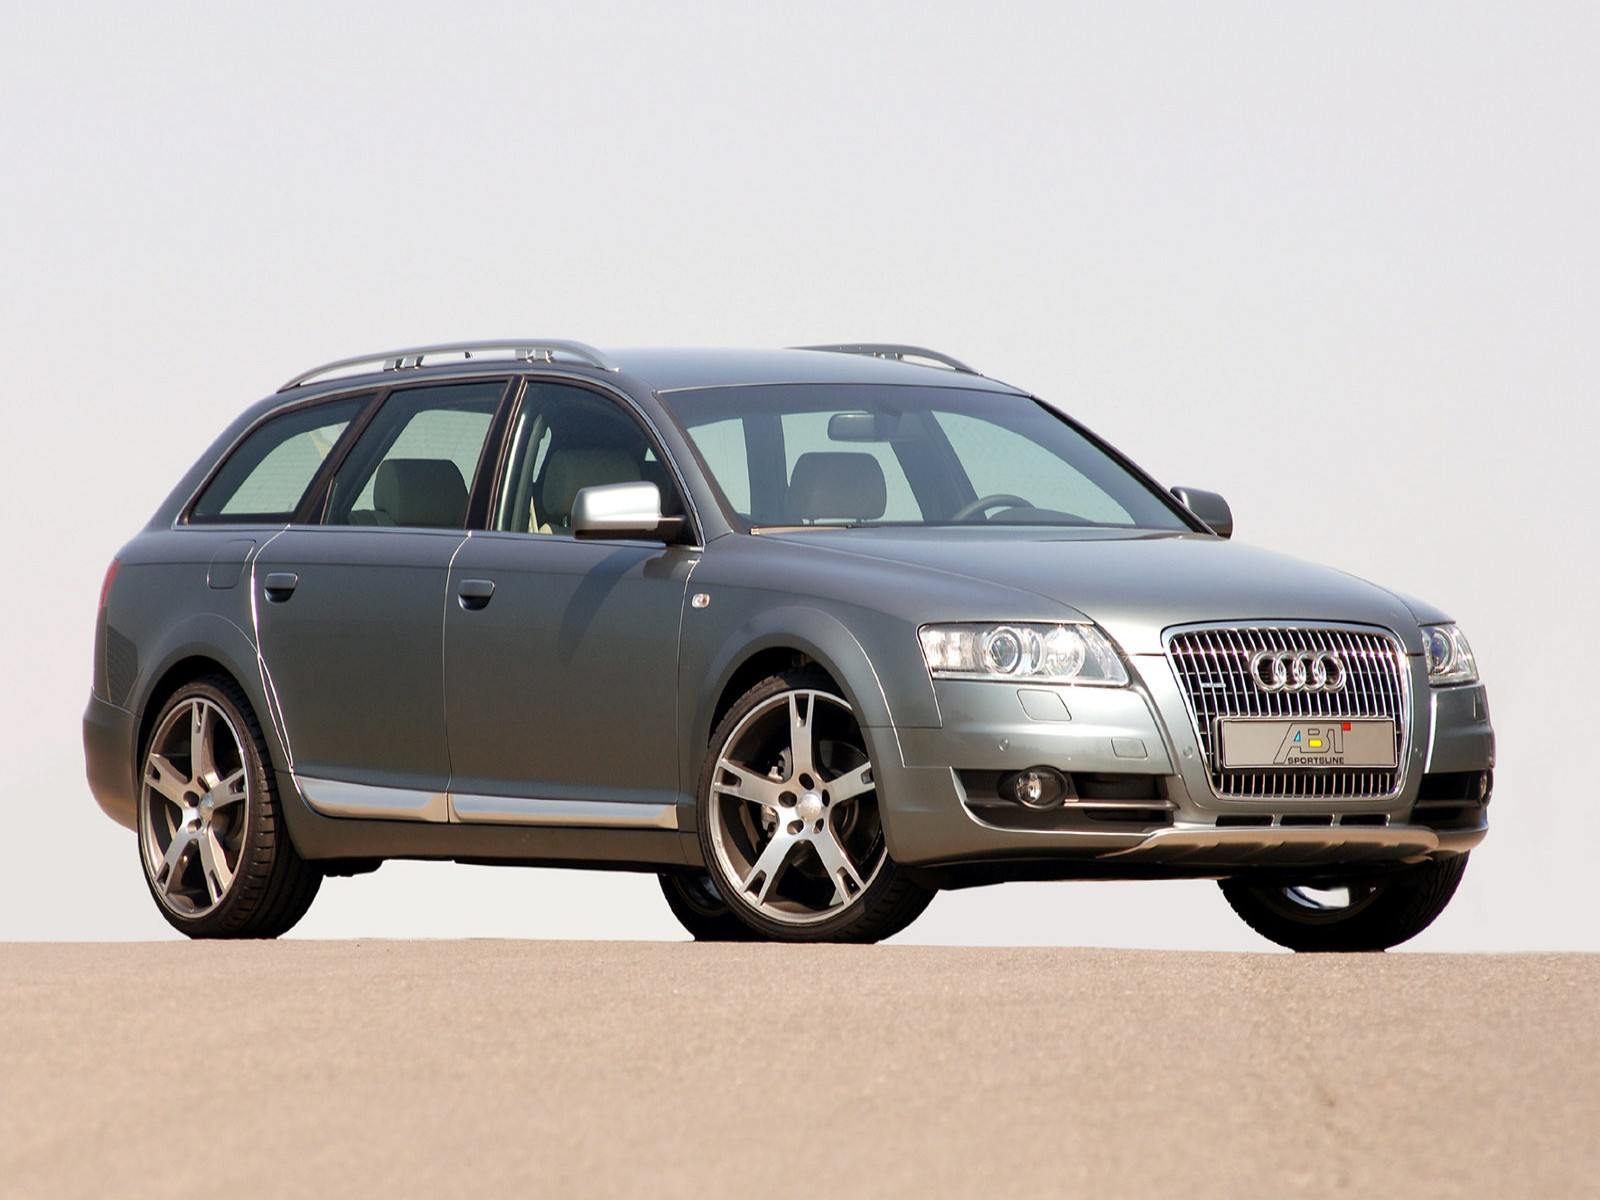 ABT Audi Allroad Quattro - All Types Of Car Wallpapers